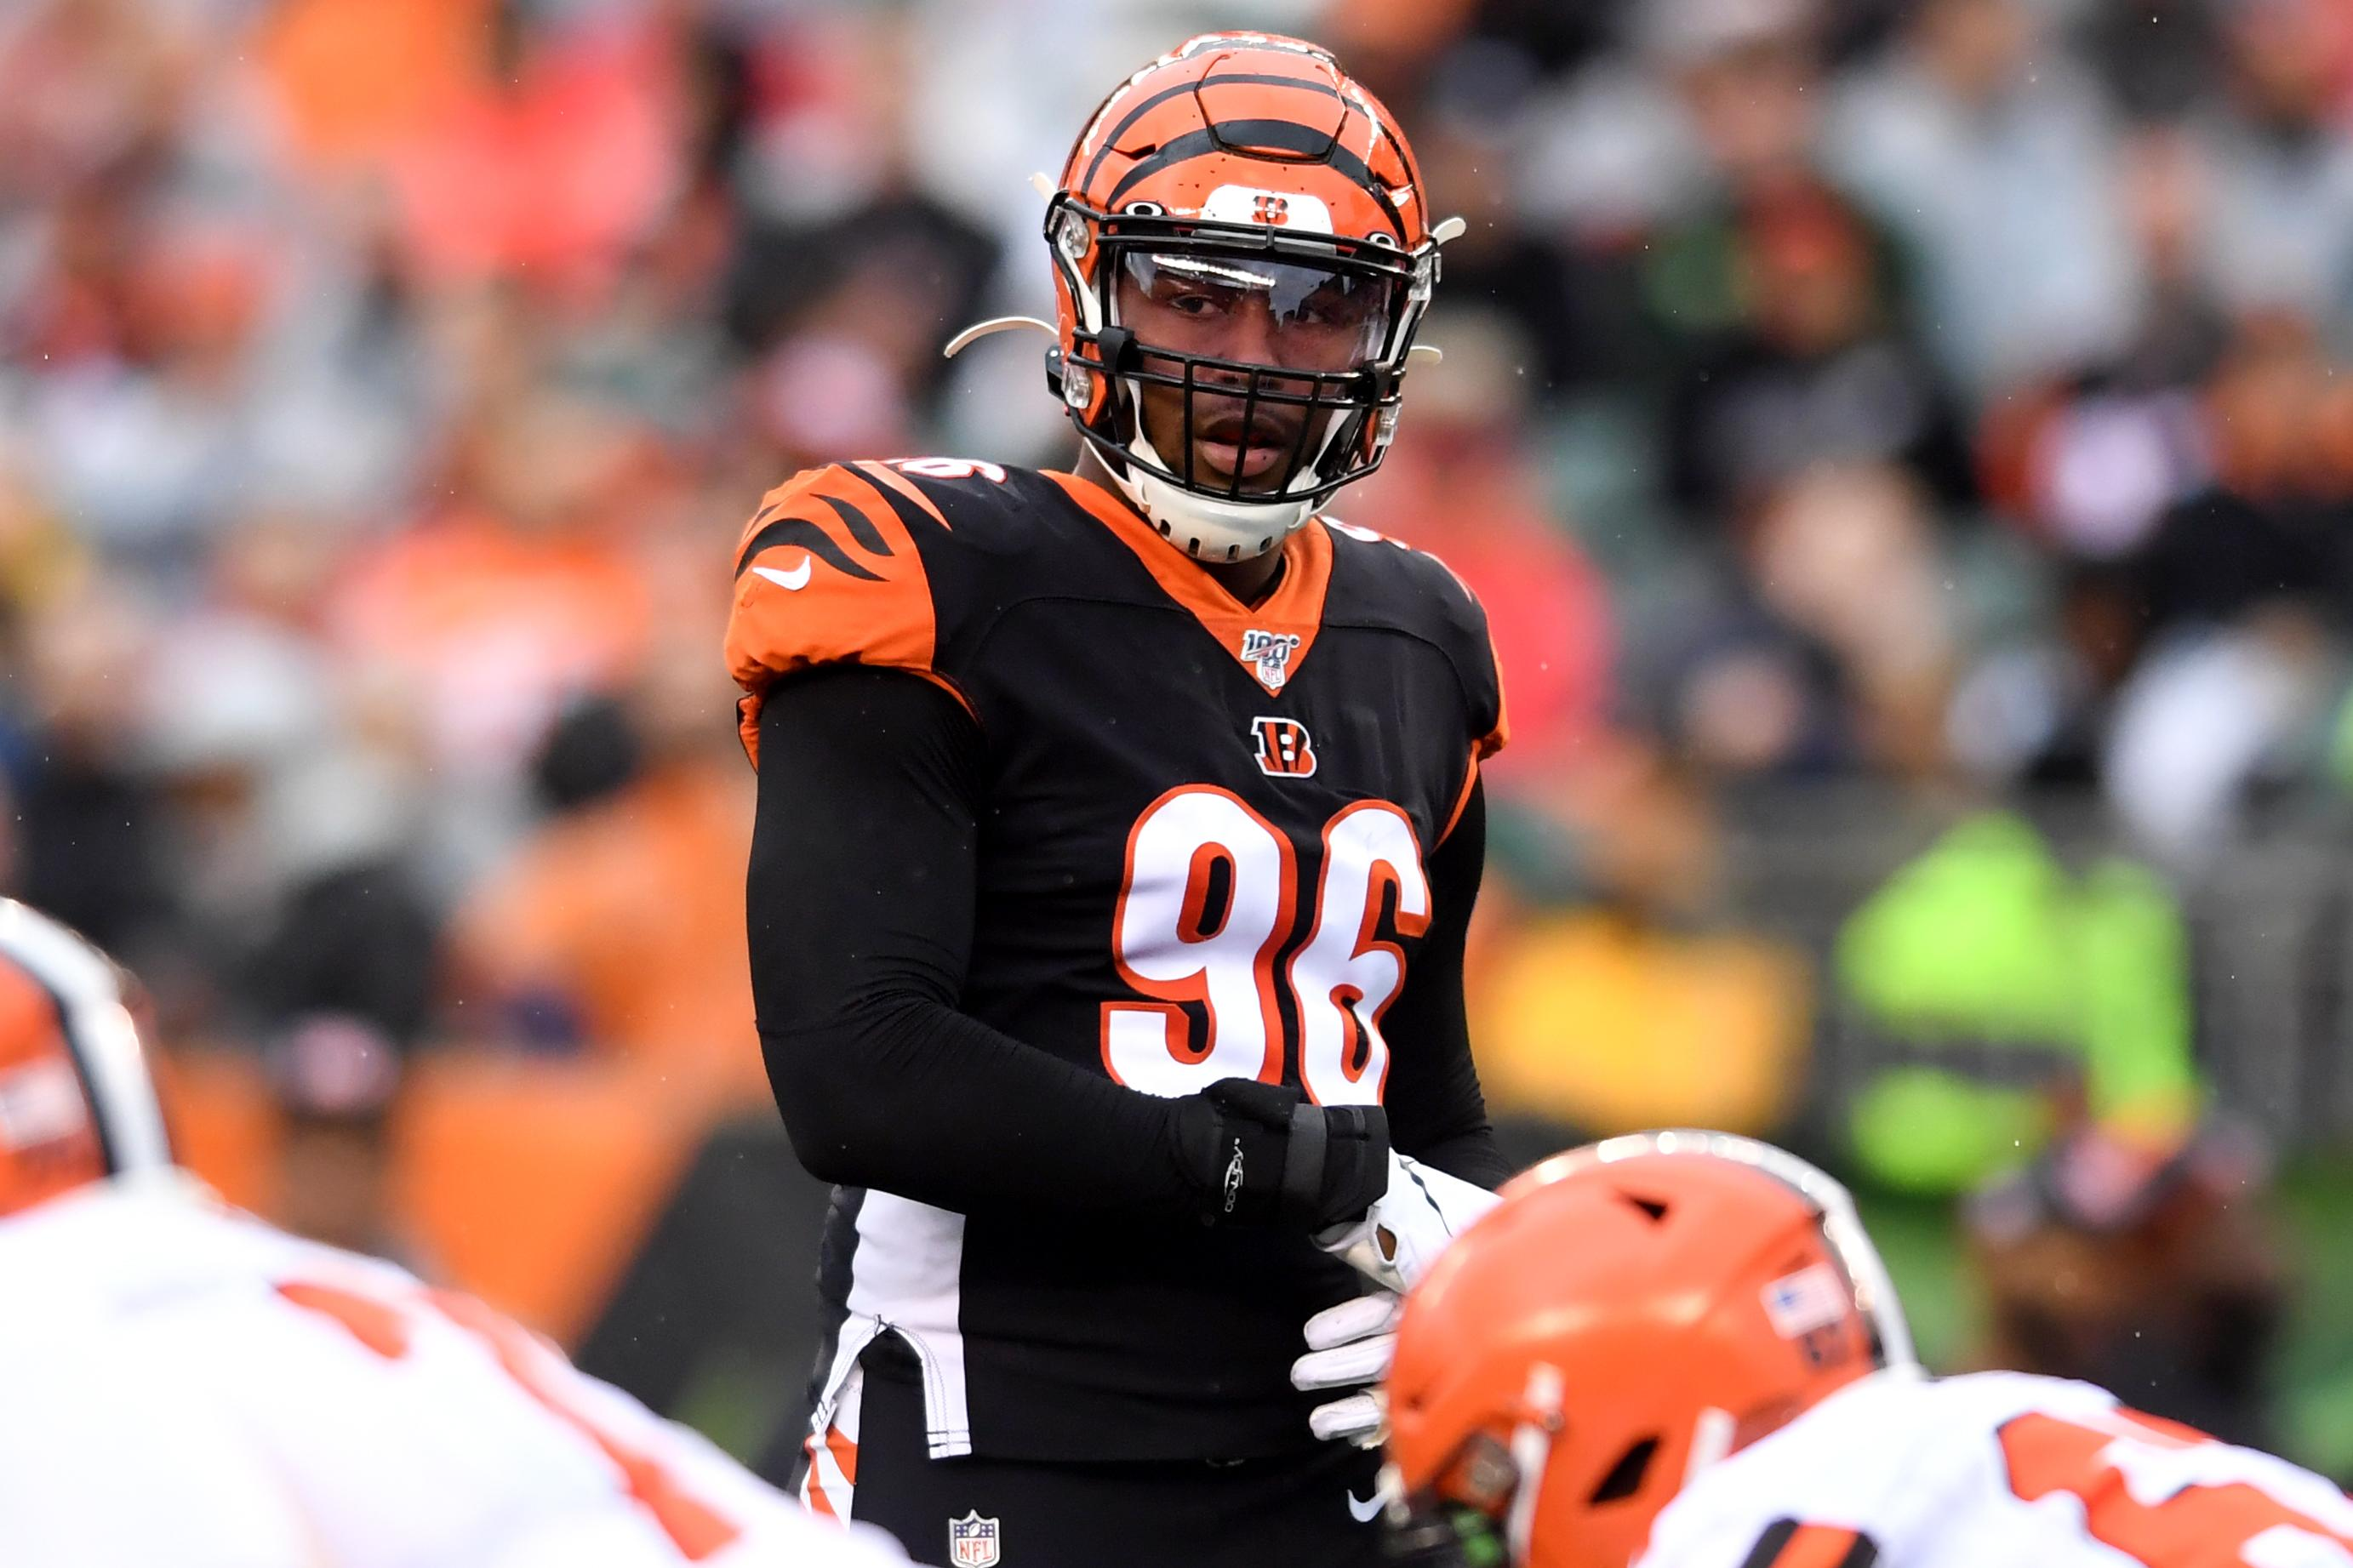 Bengals DE Carlos Dunlap offers house for sale after loss to Browns, fight with coach